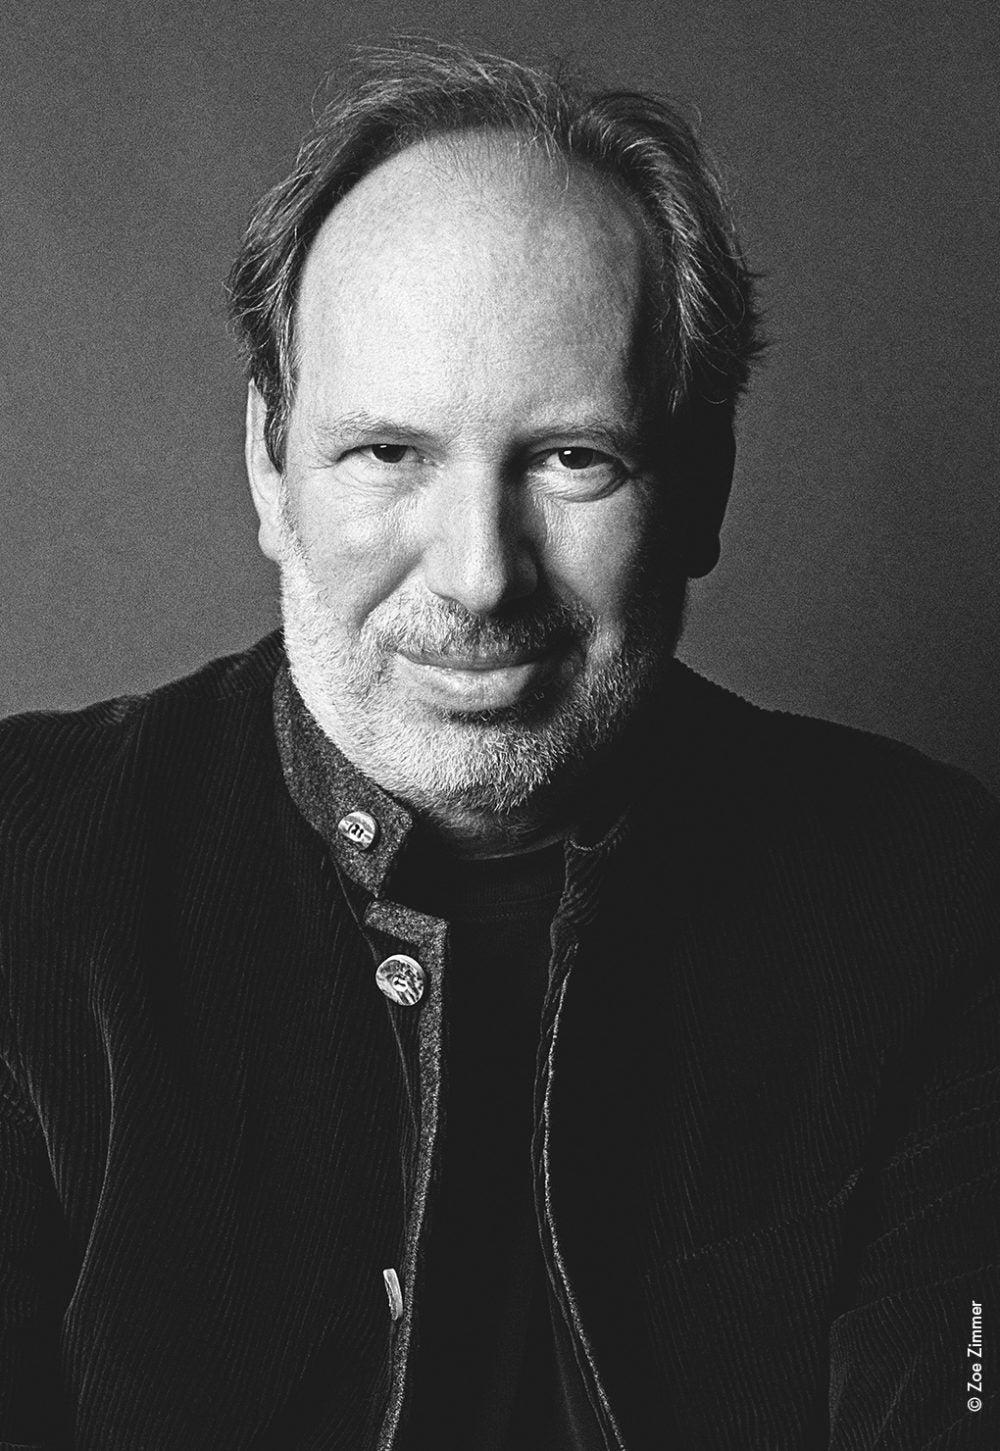 Hans Zimmer to score No Time To Die